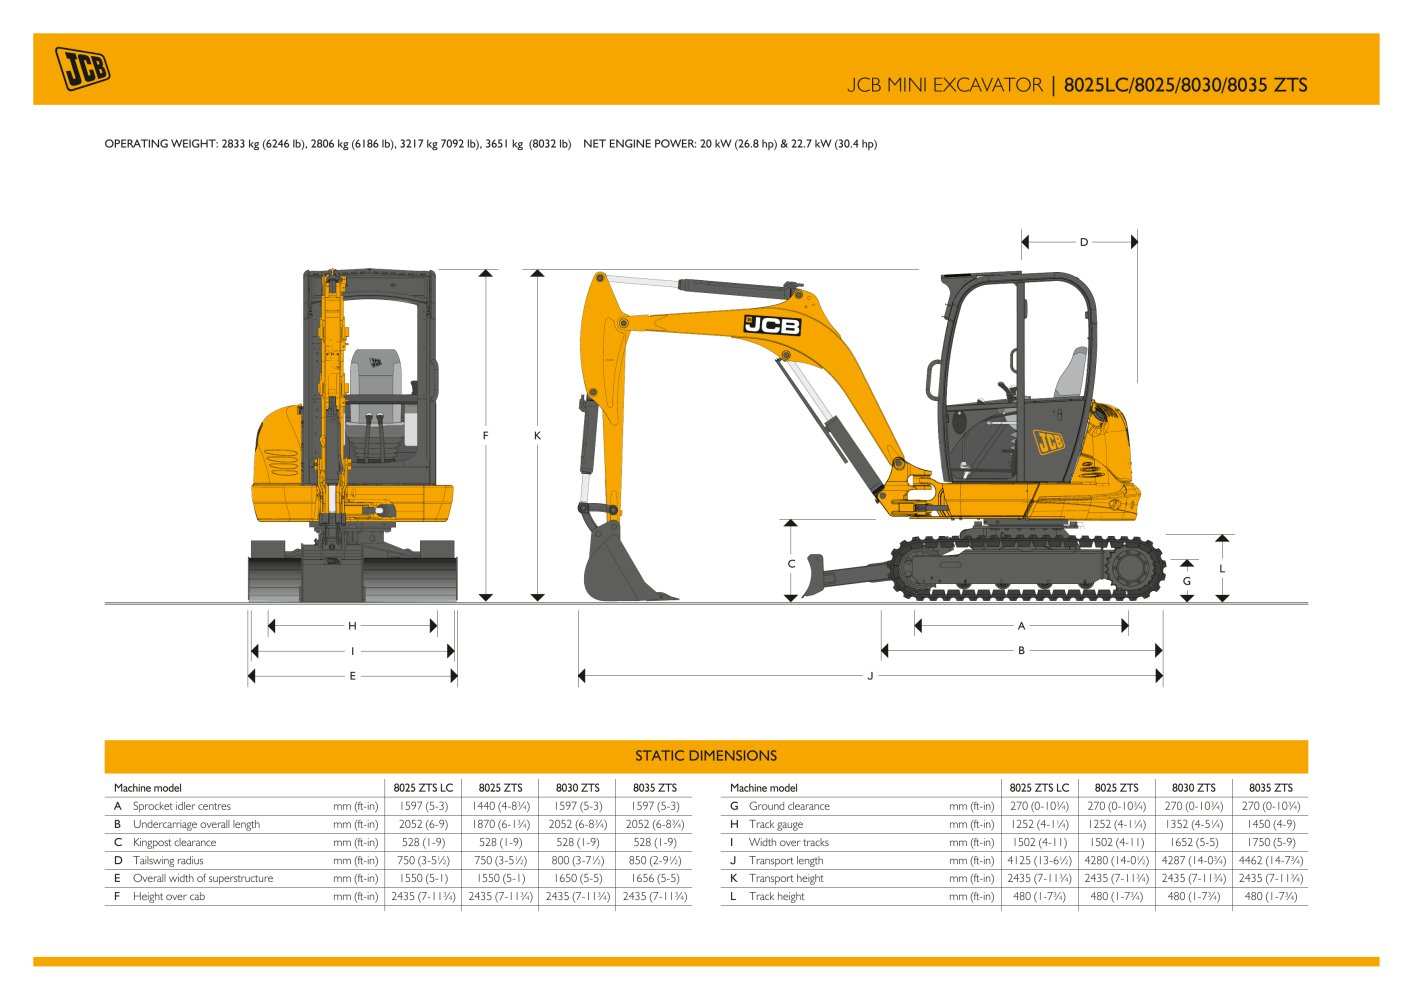 JCB MINI EXCAVATOR | 8025LC/8025/8030/8035 ZTS - 1 / 8 Pages